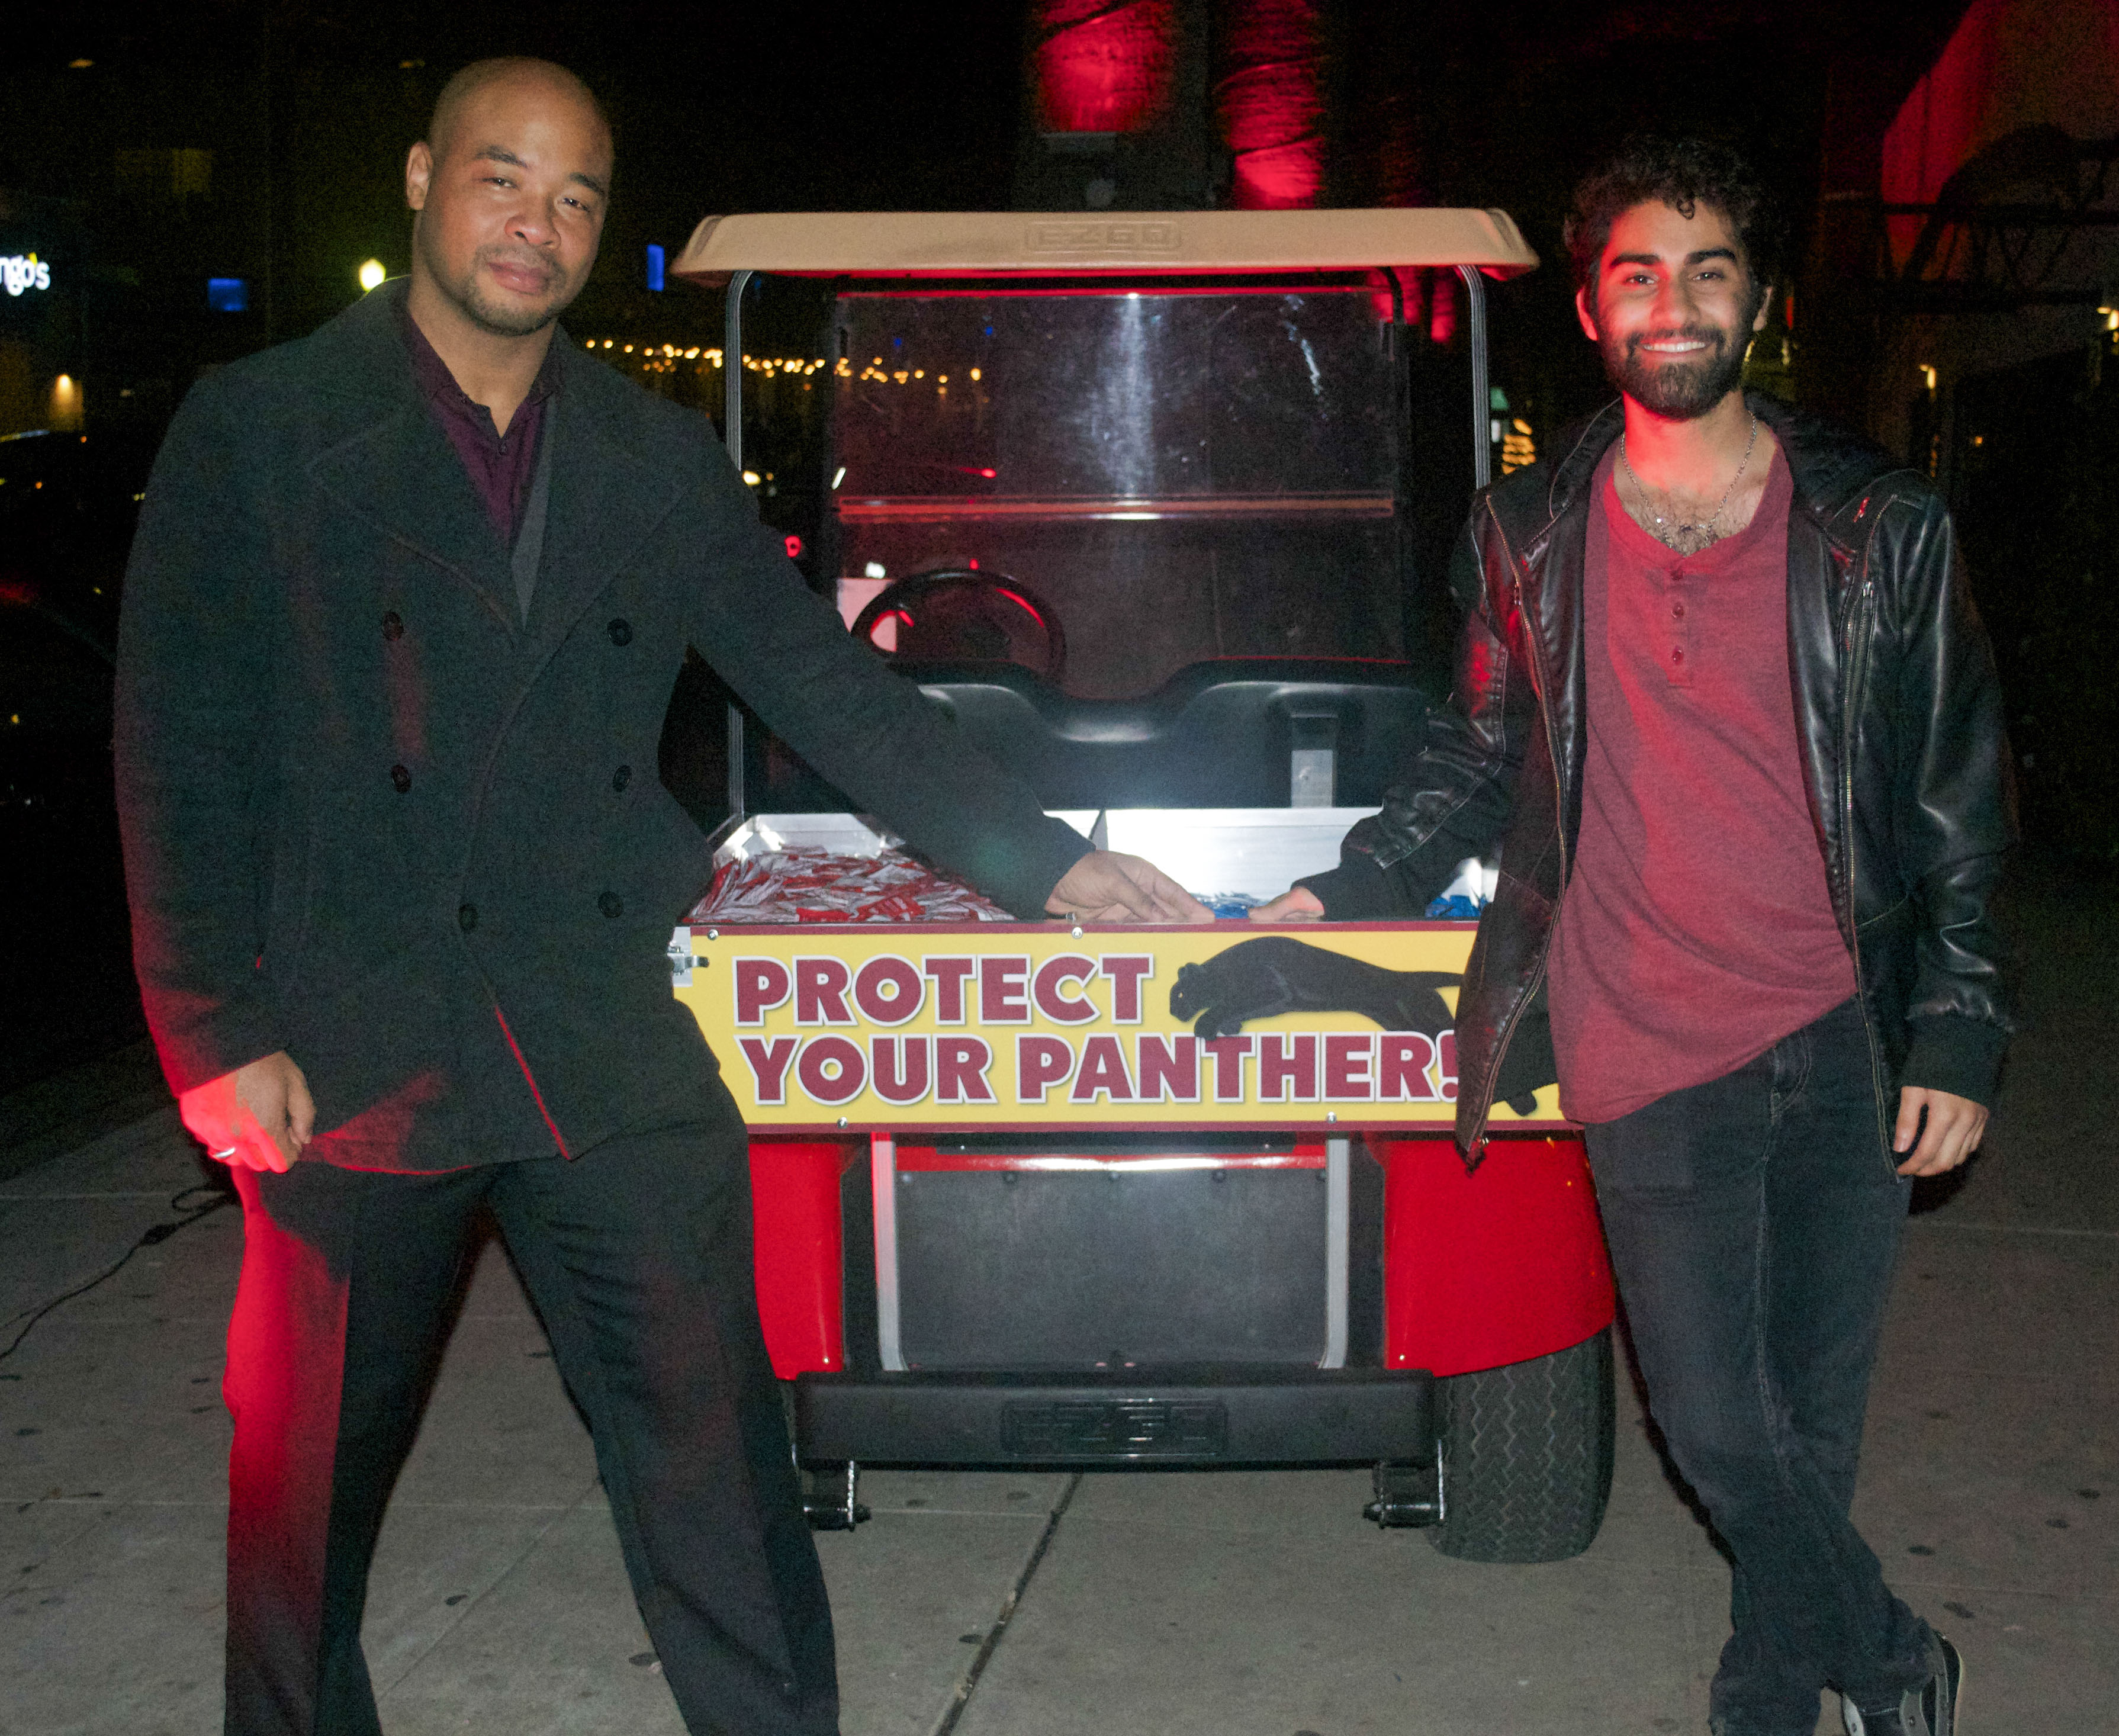 Lincoln Scott and Sandeep Singh of the Student Associated Council stand by the safe-sex golf cart, which is designed to help raise awareness about AIDS/HIV protection. Photo by Gabrielle Smith | Photo Editor | gsmithexpress@gmail.com